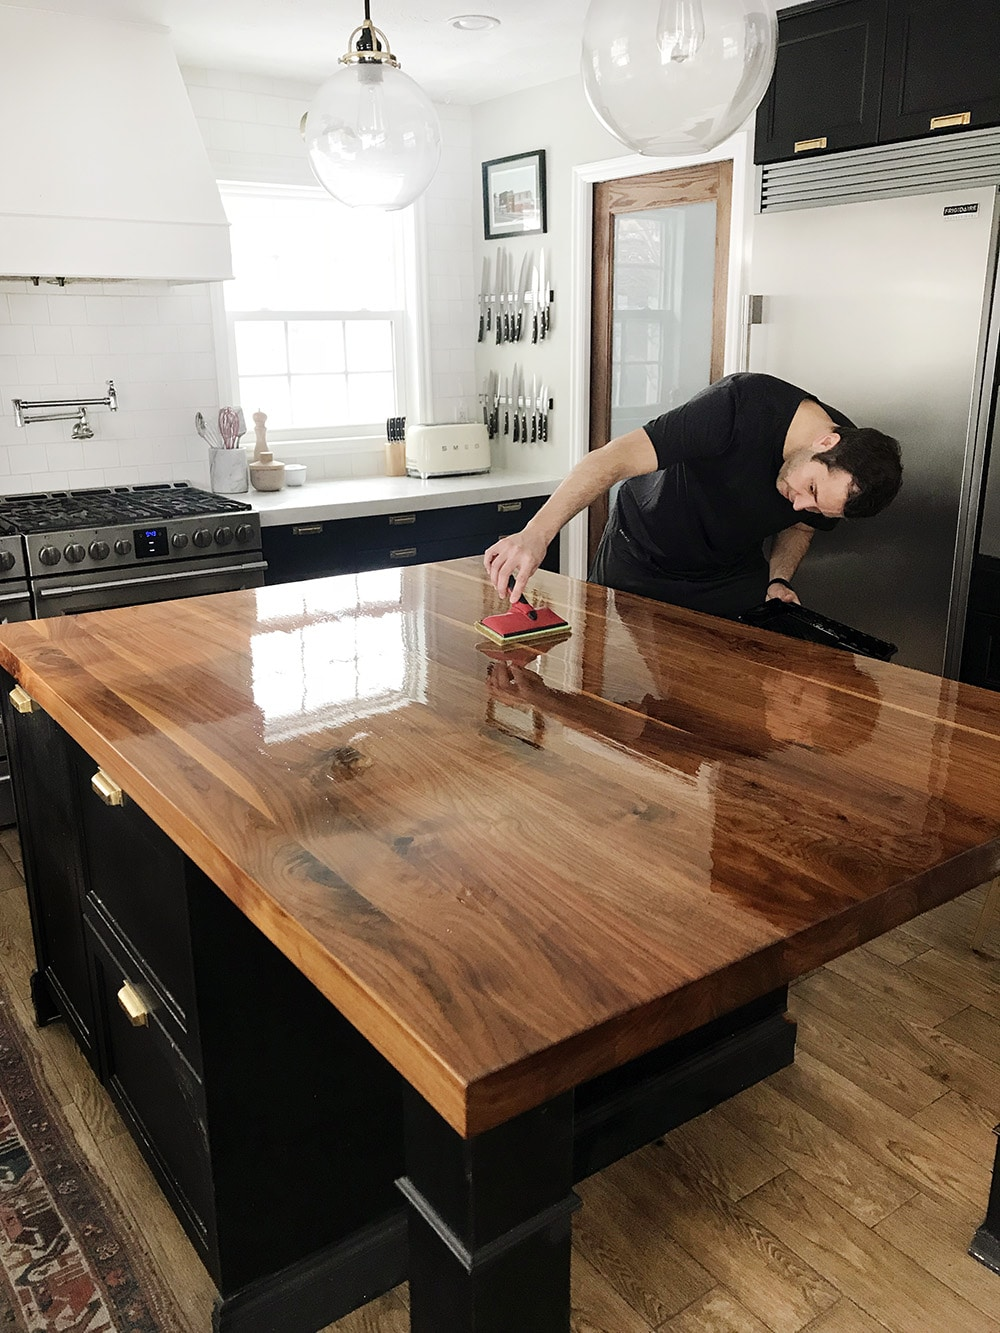 Were left with what looks like a brand walnut countertop in my opinion wood